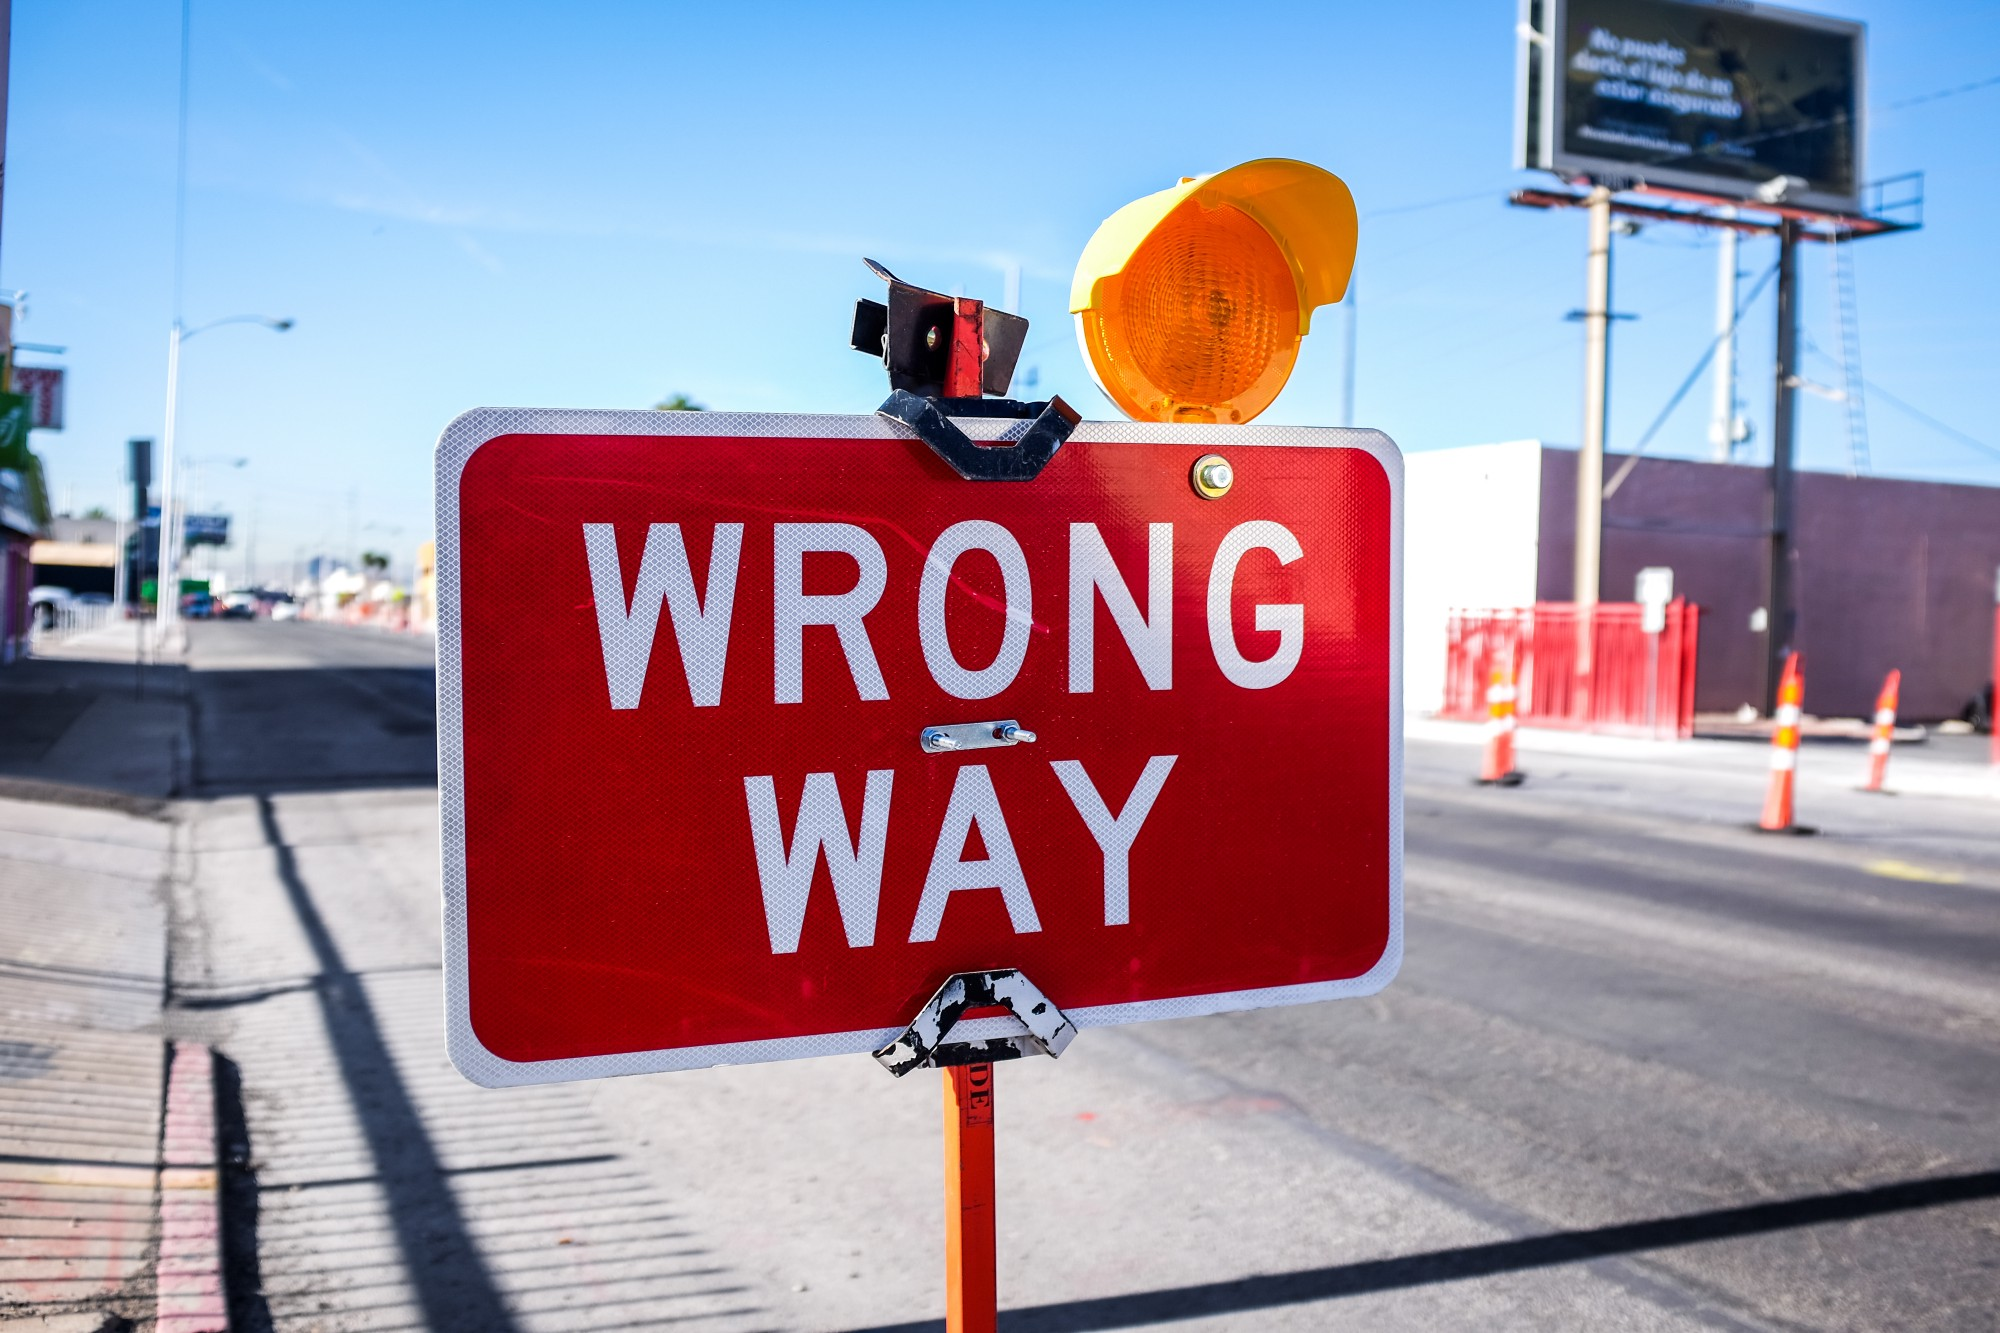 Making right decisions are not always easy. Don't go the wrong way in life.